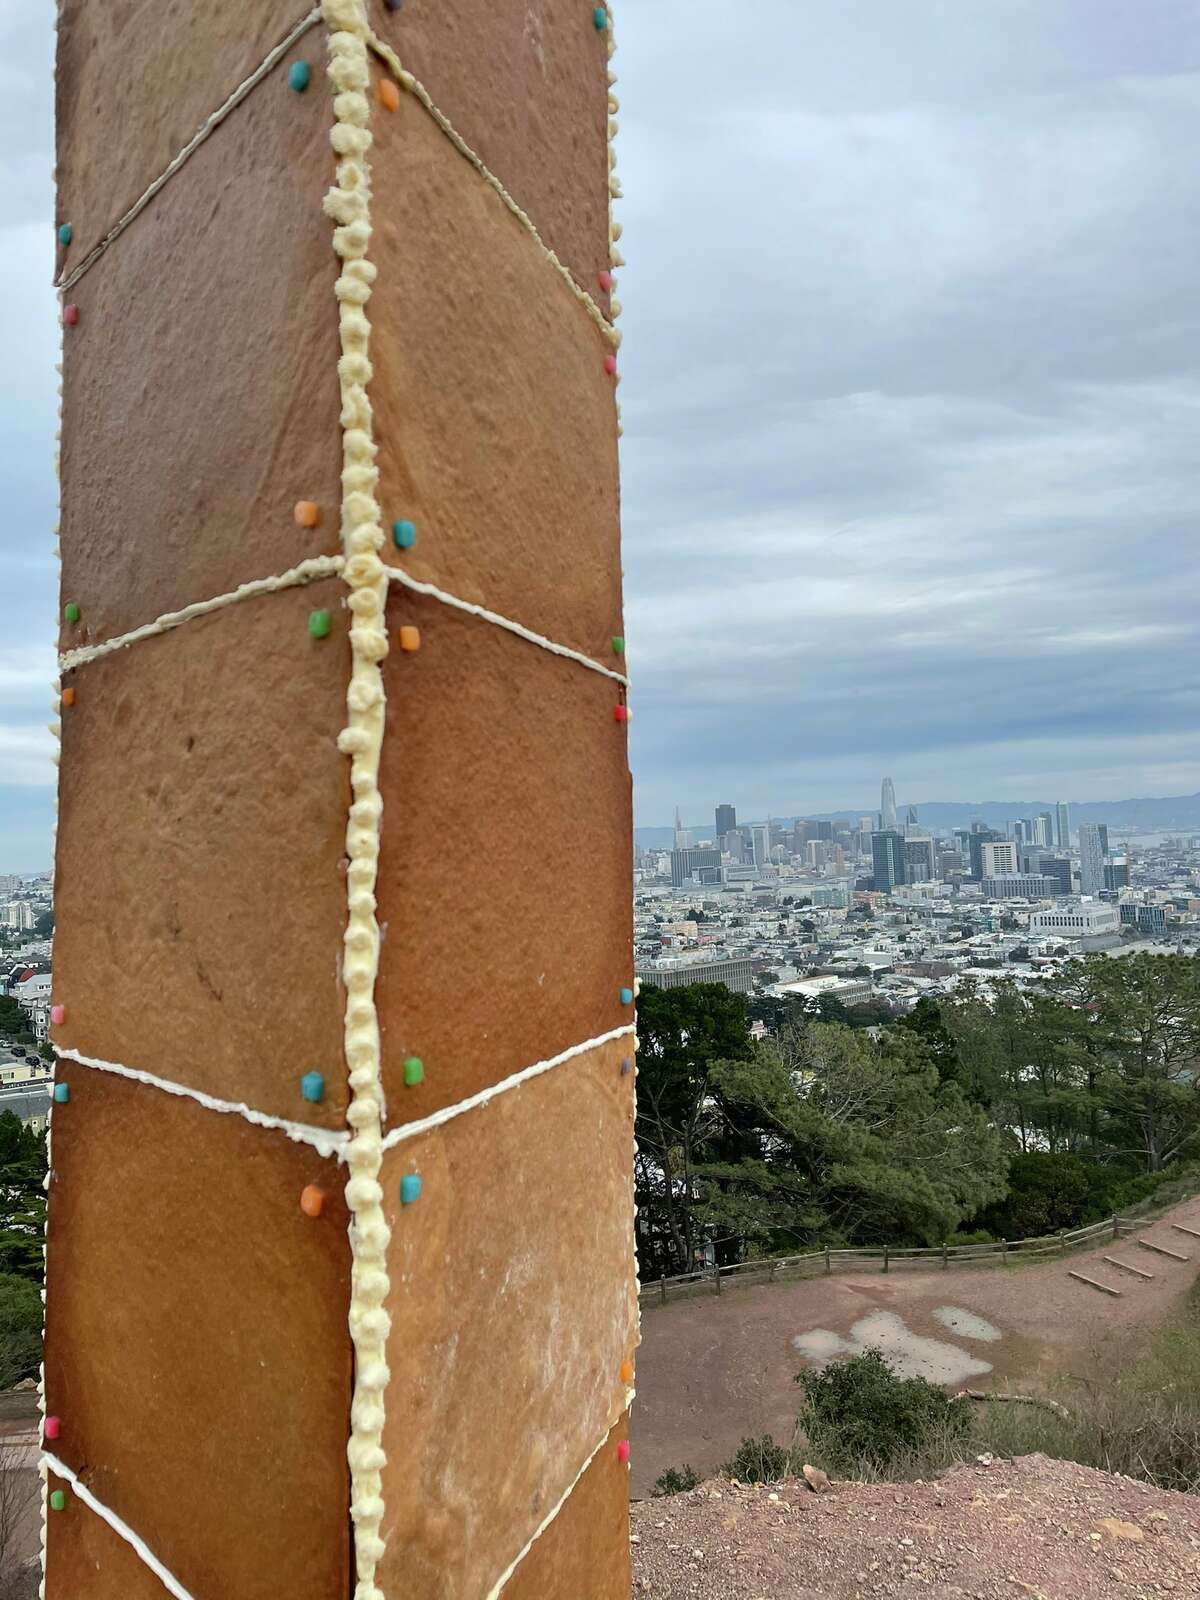 A mysterious monolith has appeared in San Francisco, following weeks of metal monoliths popping up in other parts of the world. San Francisco's version, however, appears to be edible. This closeup shows the detail on the frosting and gingerbread.